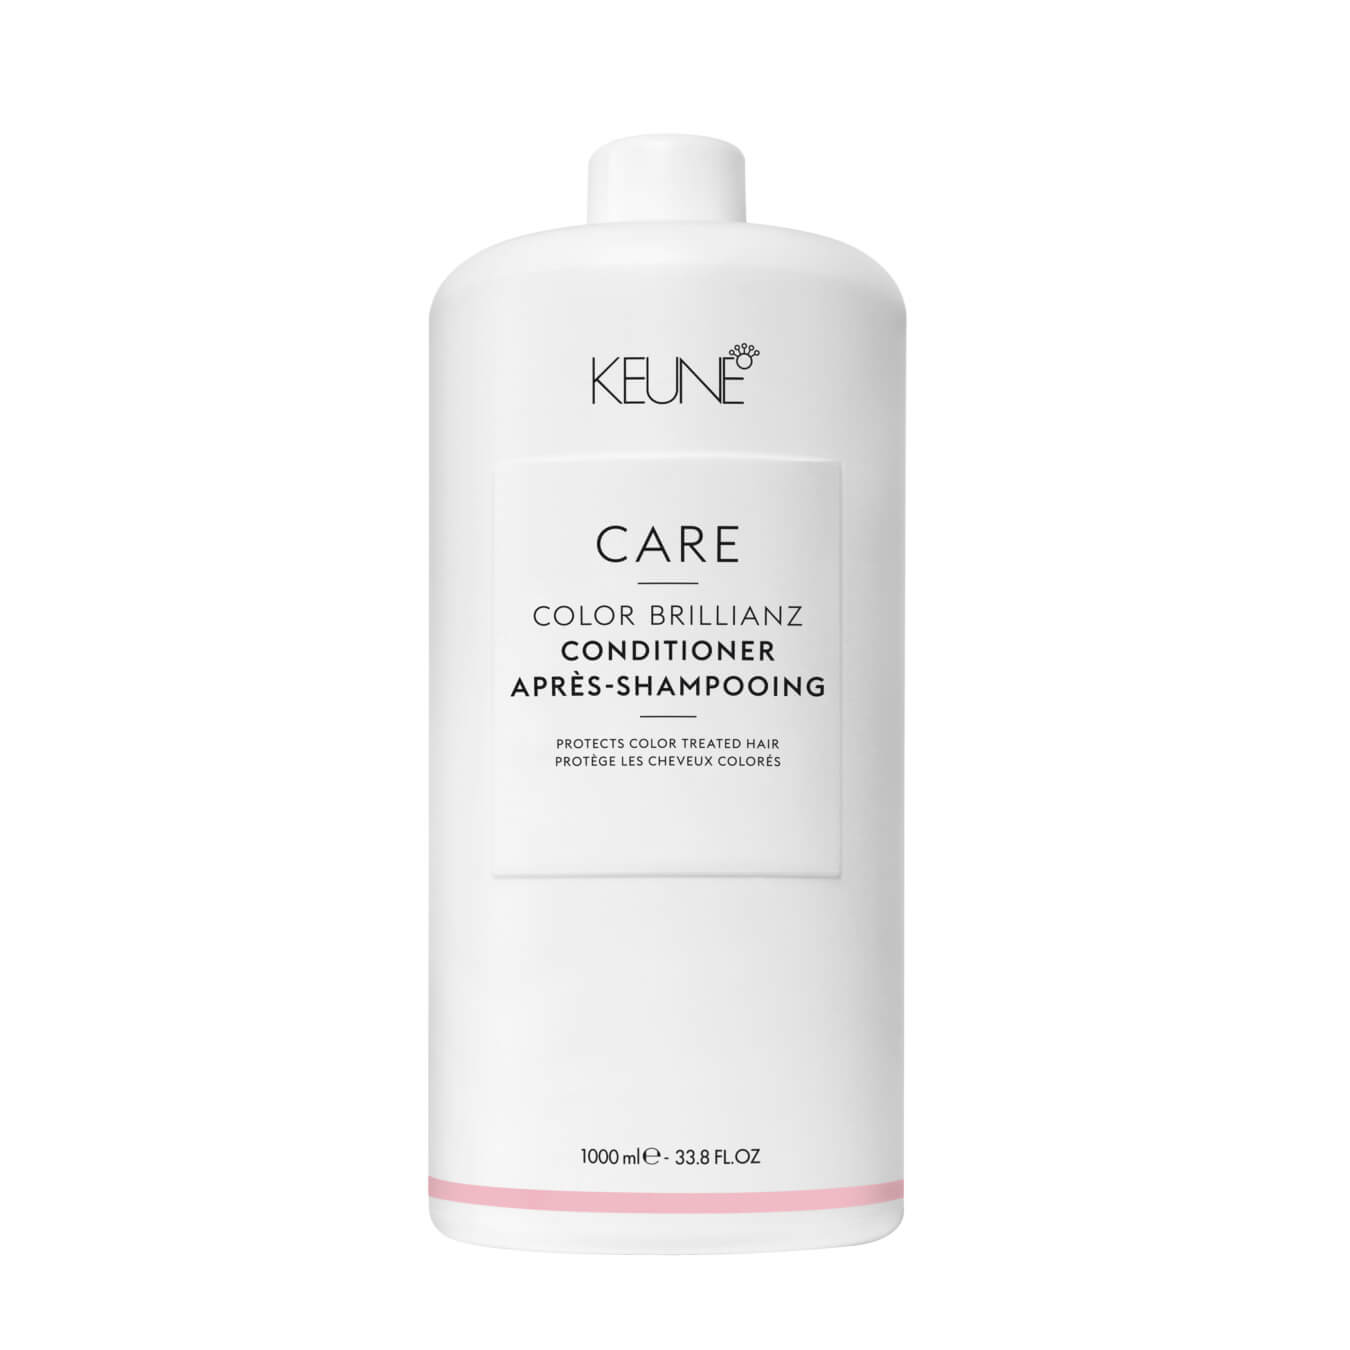 Koop Keune Care Color Brillianz Conditioner 1000ml